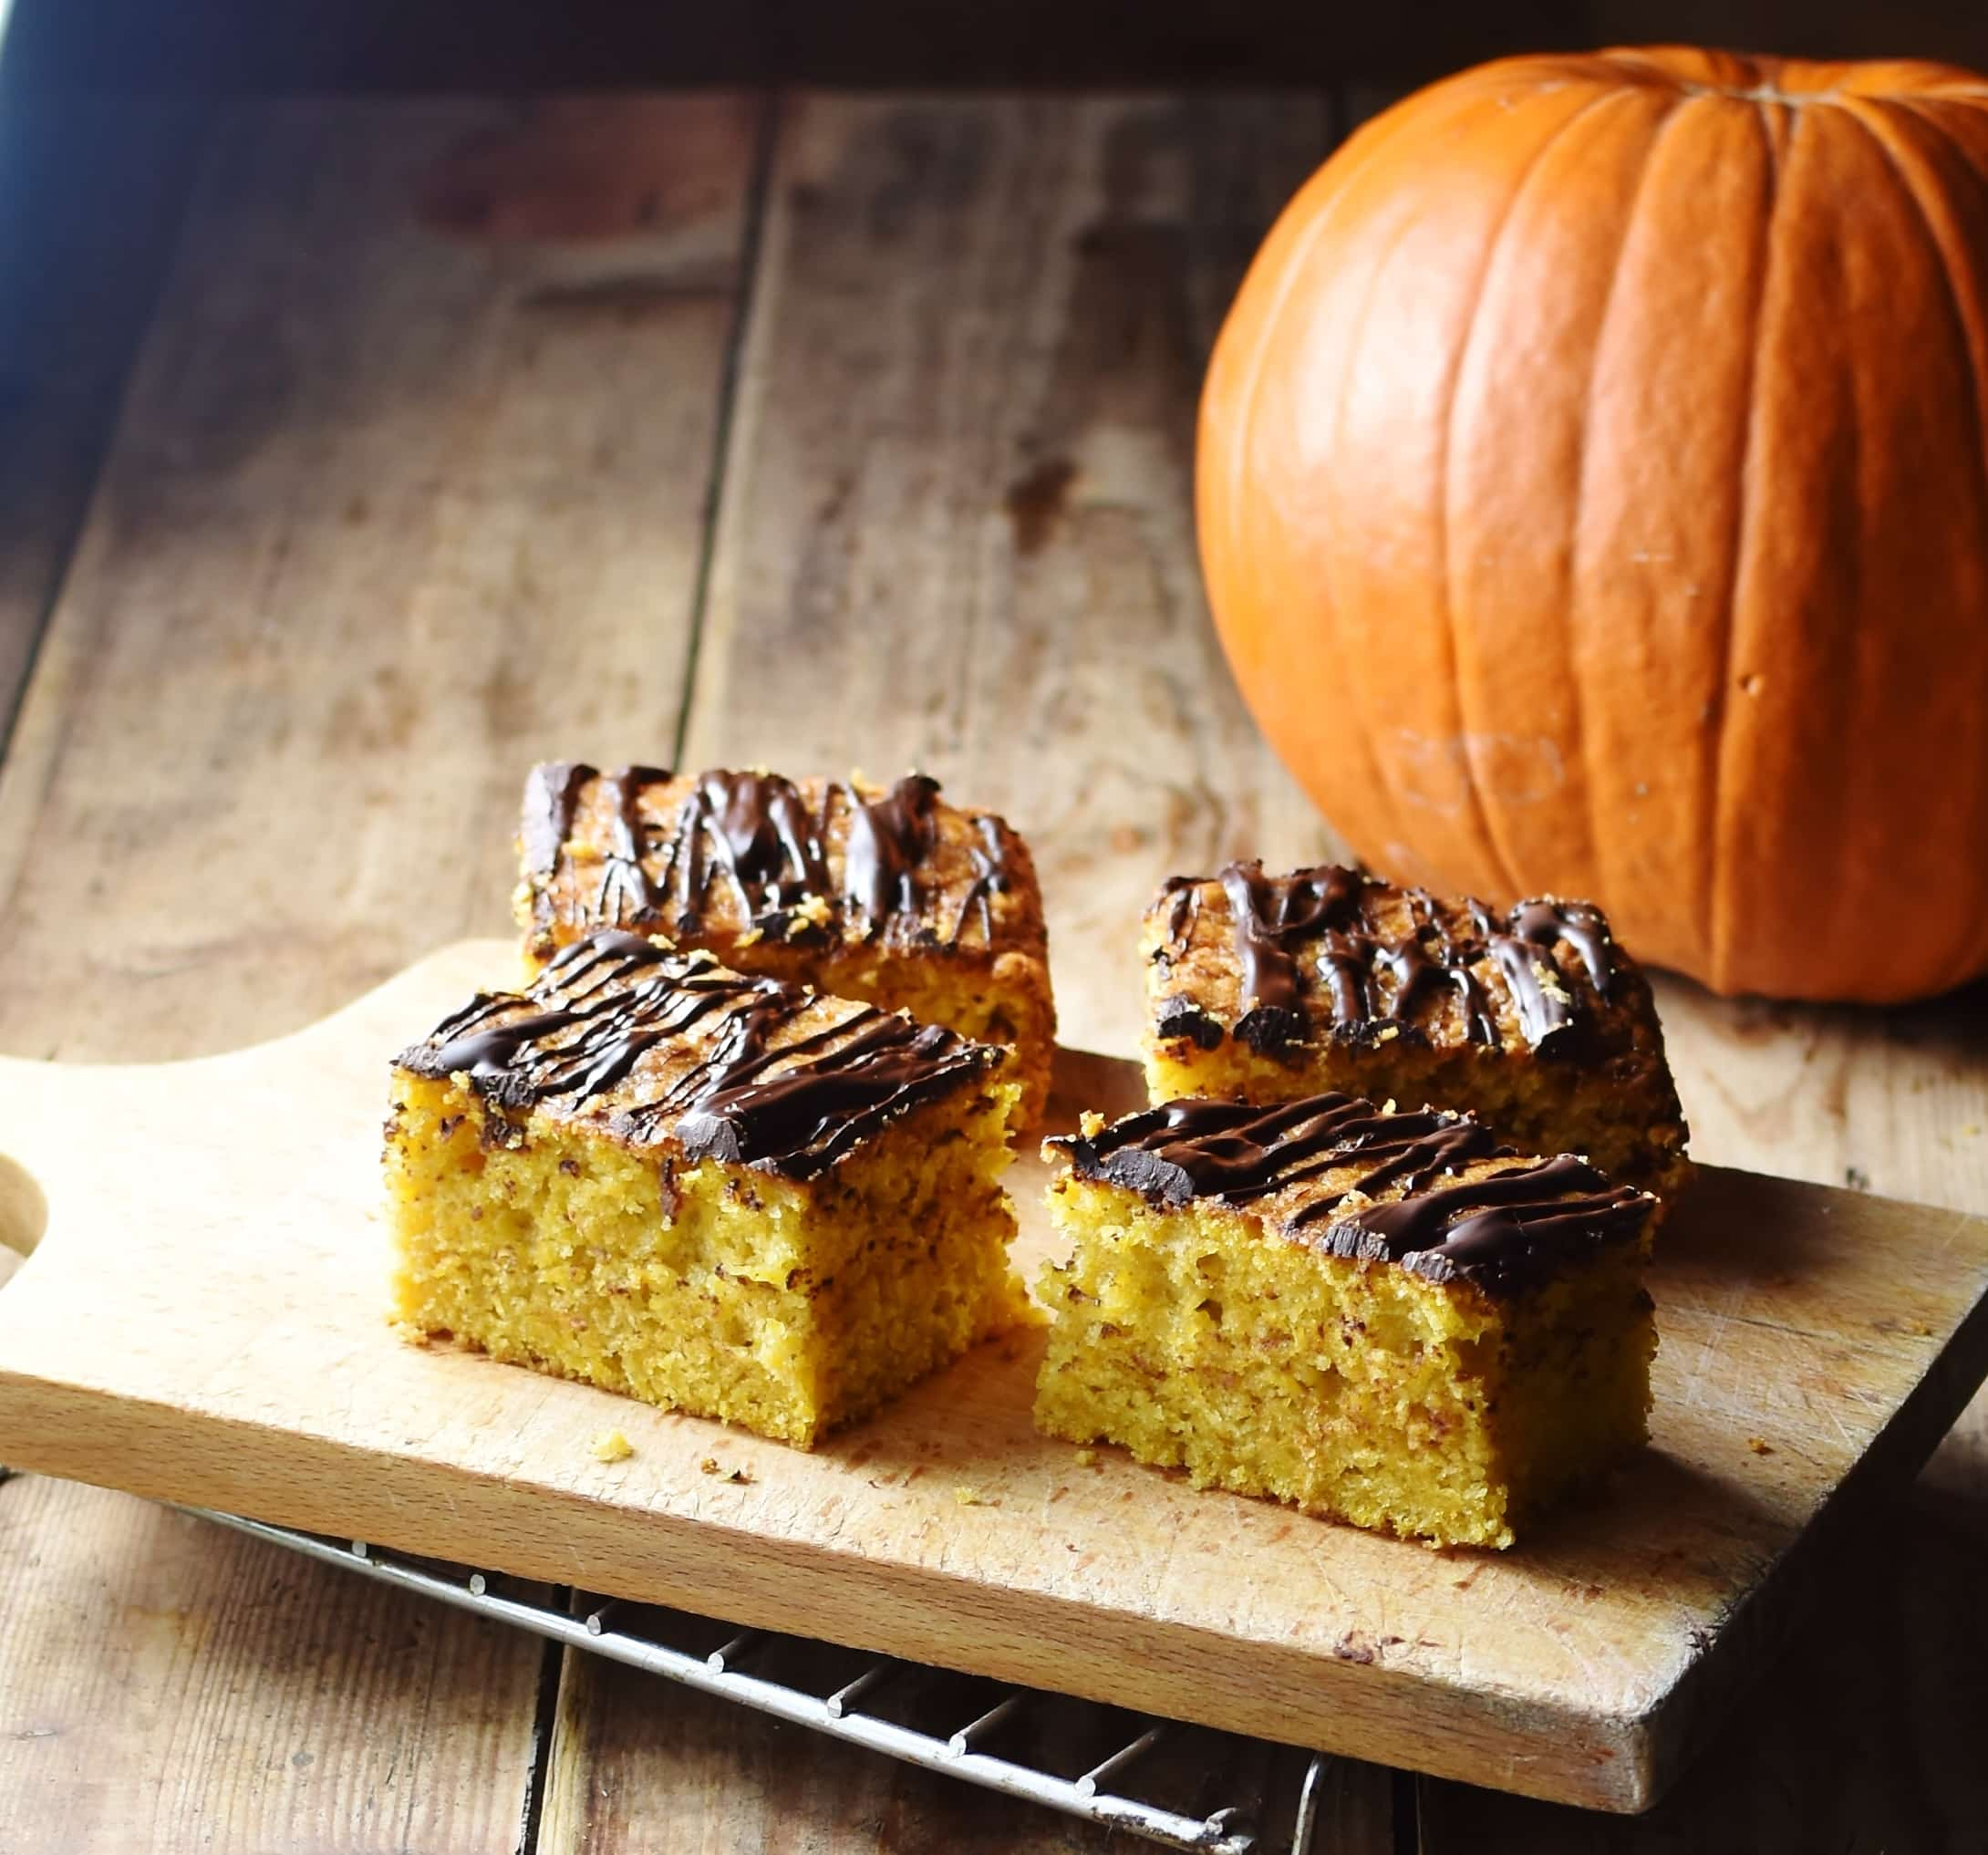 4 slices of pumpkin cake with chocolate drizzle on top of cutting board, with pumpkin in background.